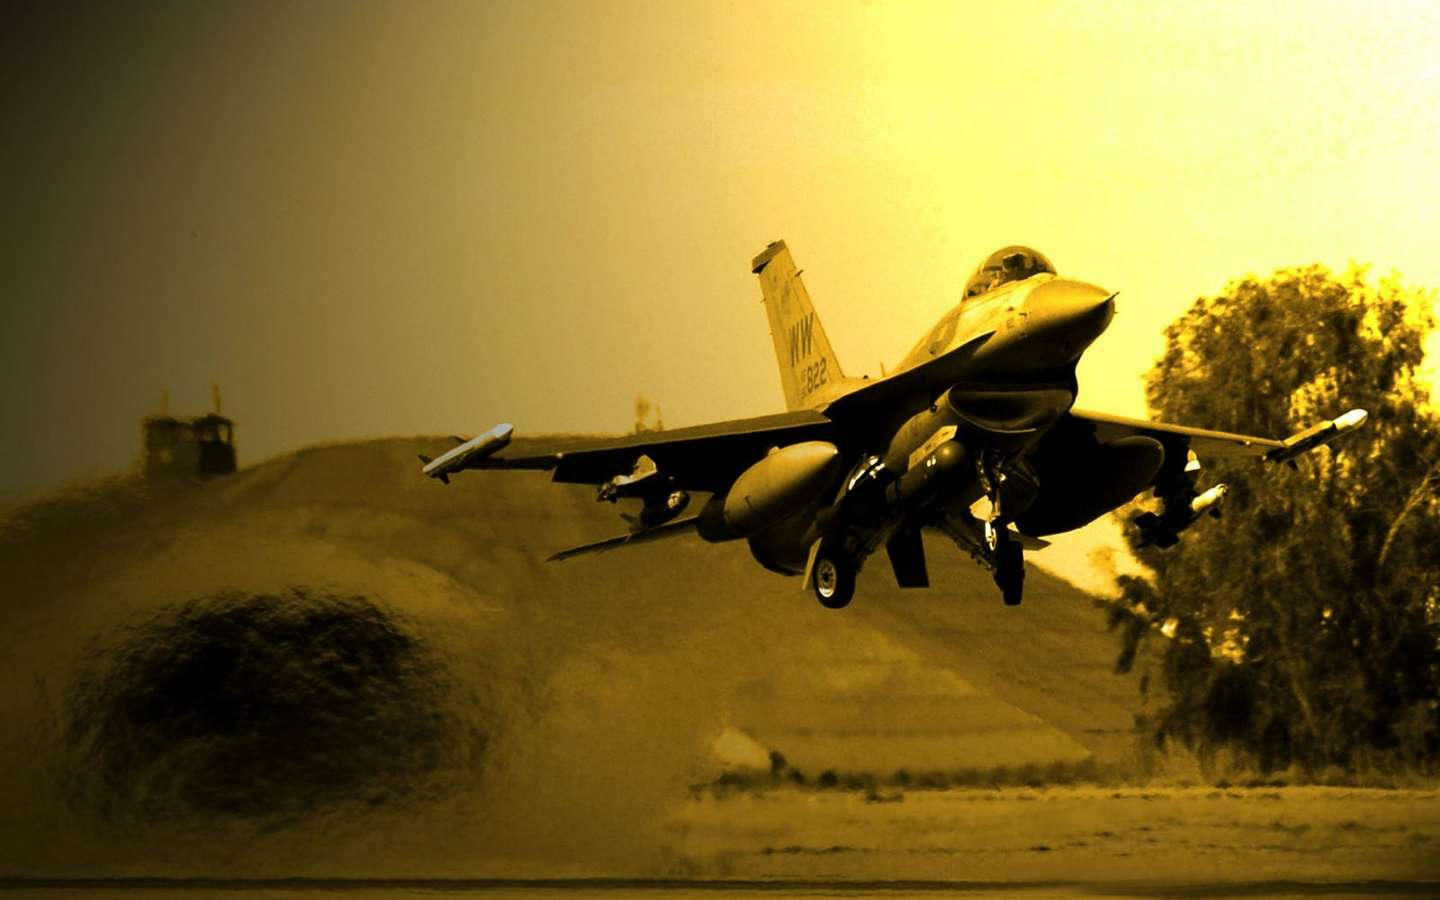 f16 fighting falcon wallpaper hd wallpapers